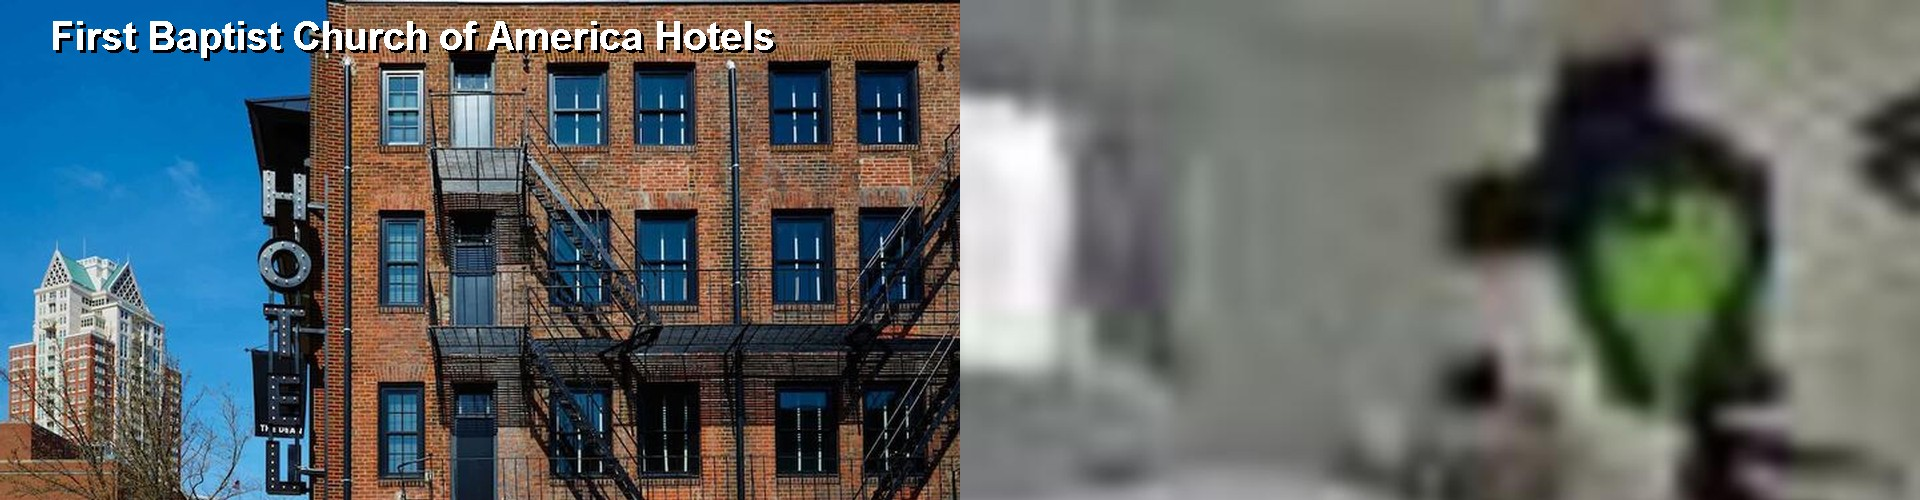 5 Best Hotels near First Baptist Church of America